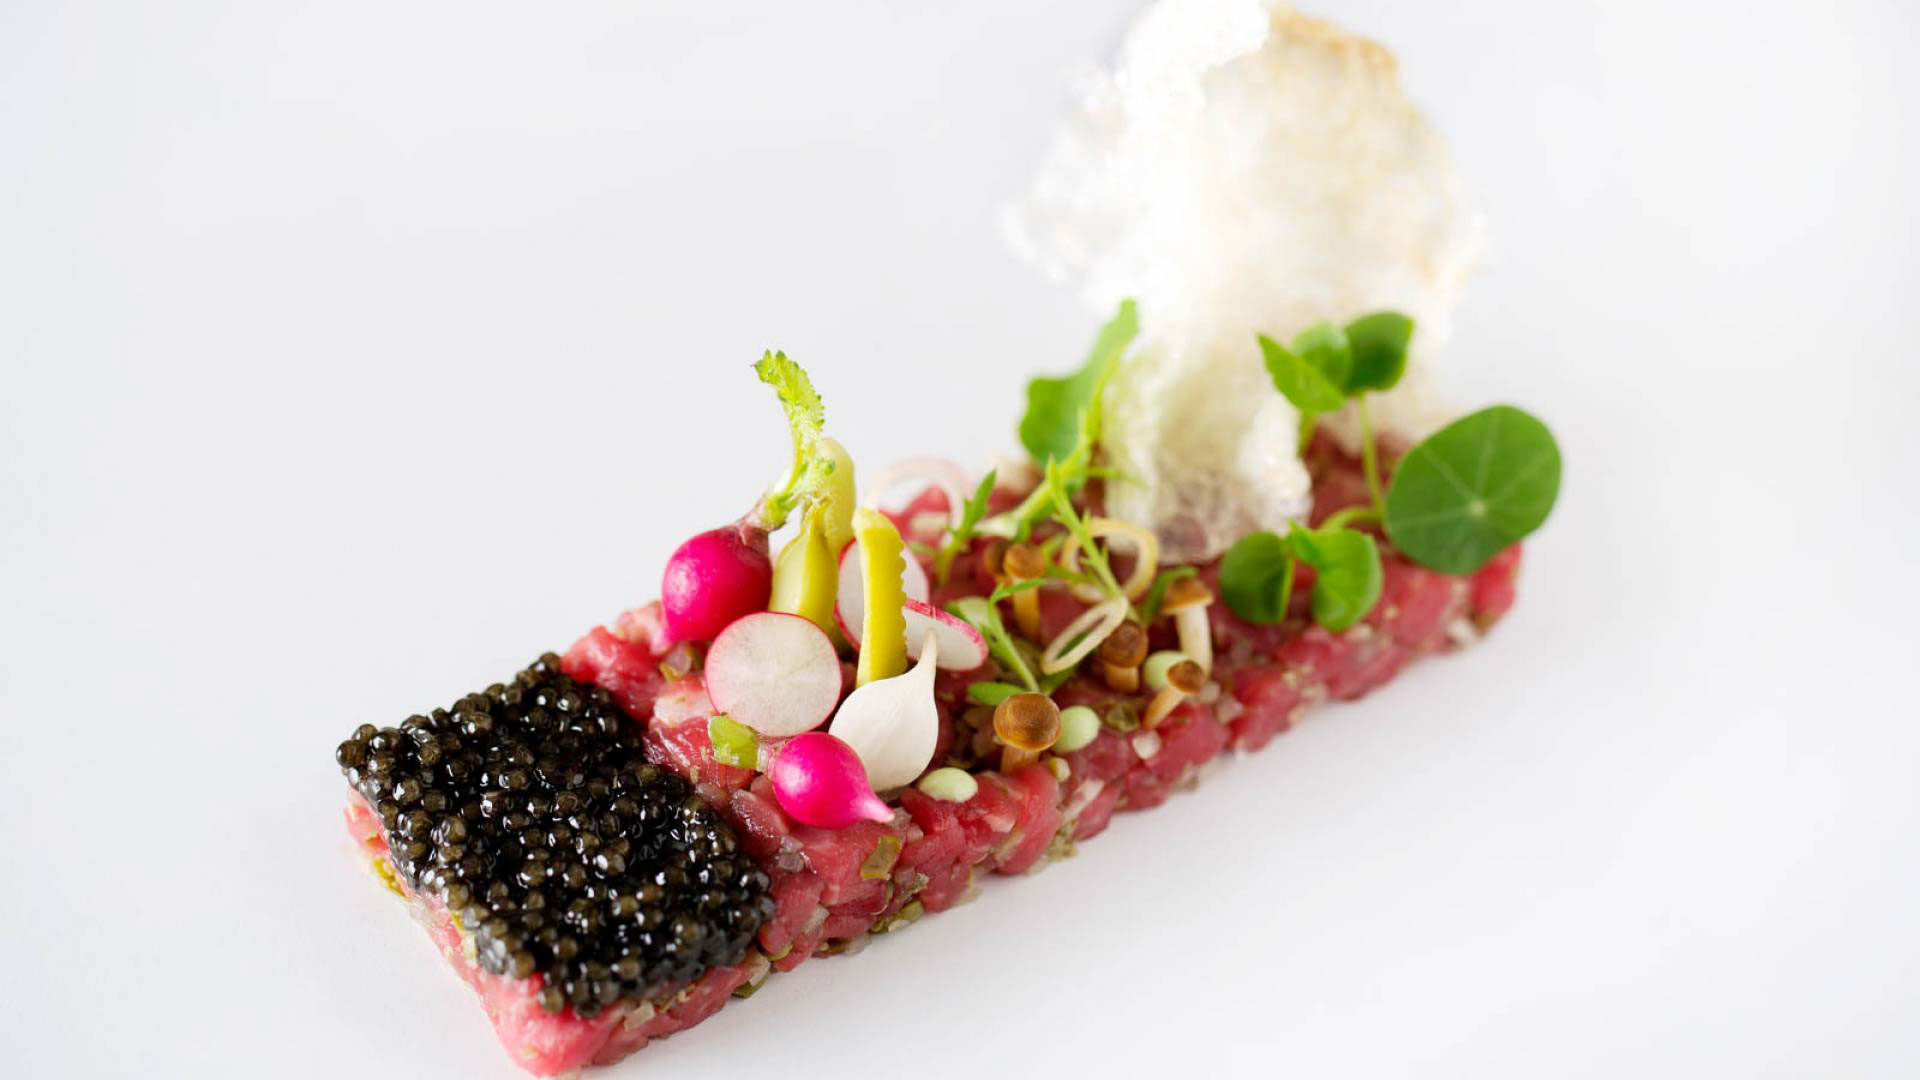 4 courses, a glass of champagne, canapes, amuse bouche & a kitchen tour £50 per person